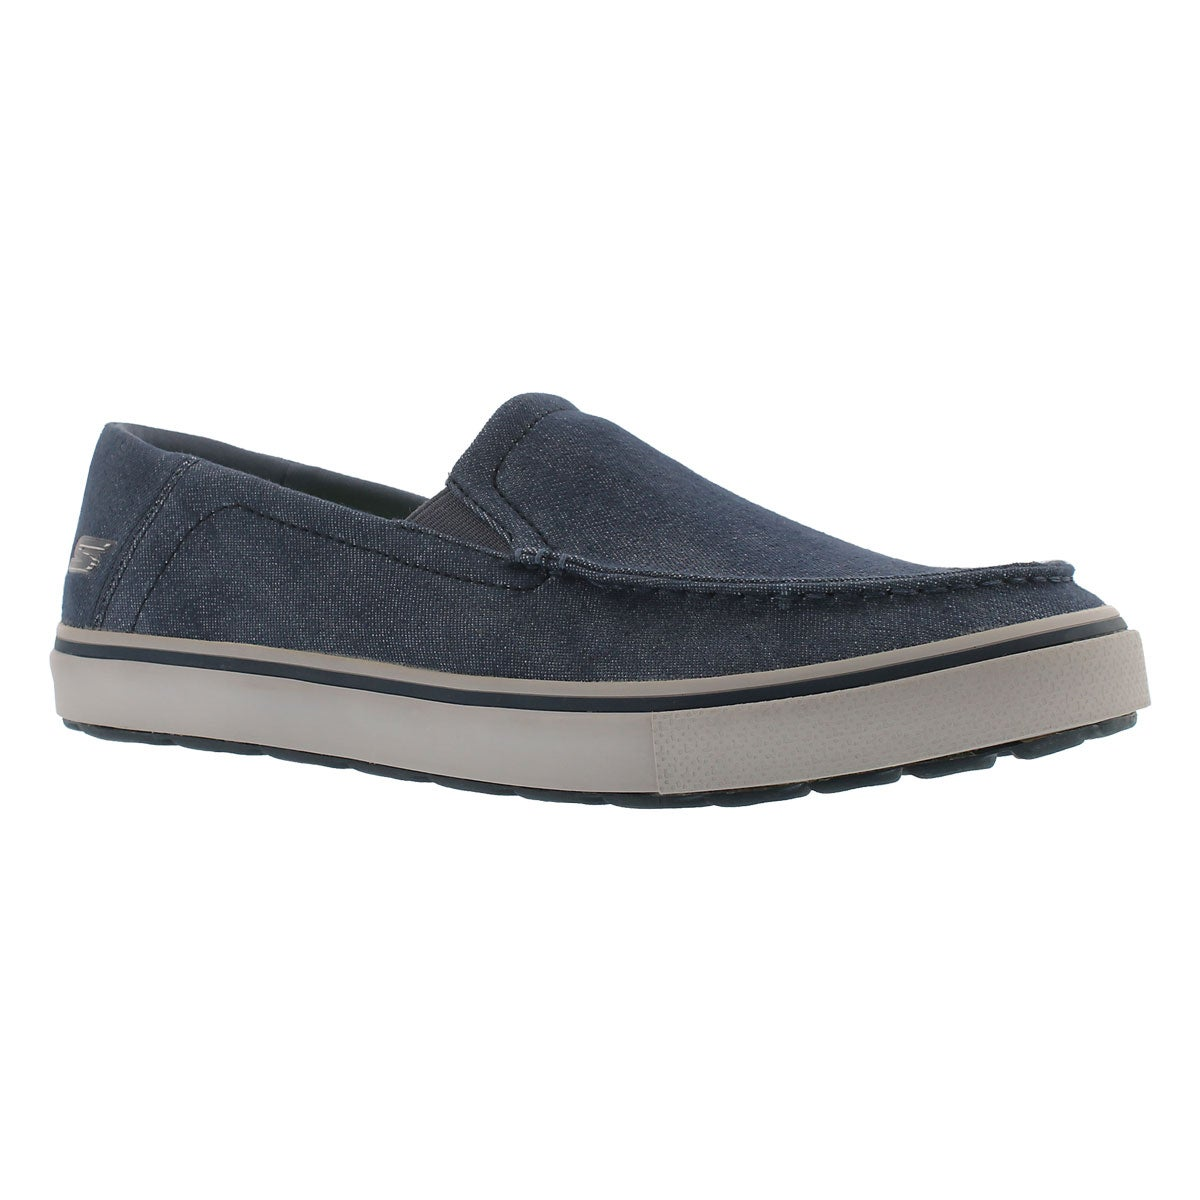 Men's GO VULC TOUR navy slip on loafers